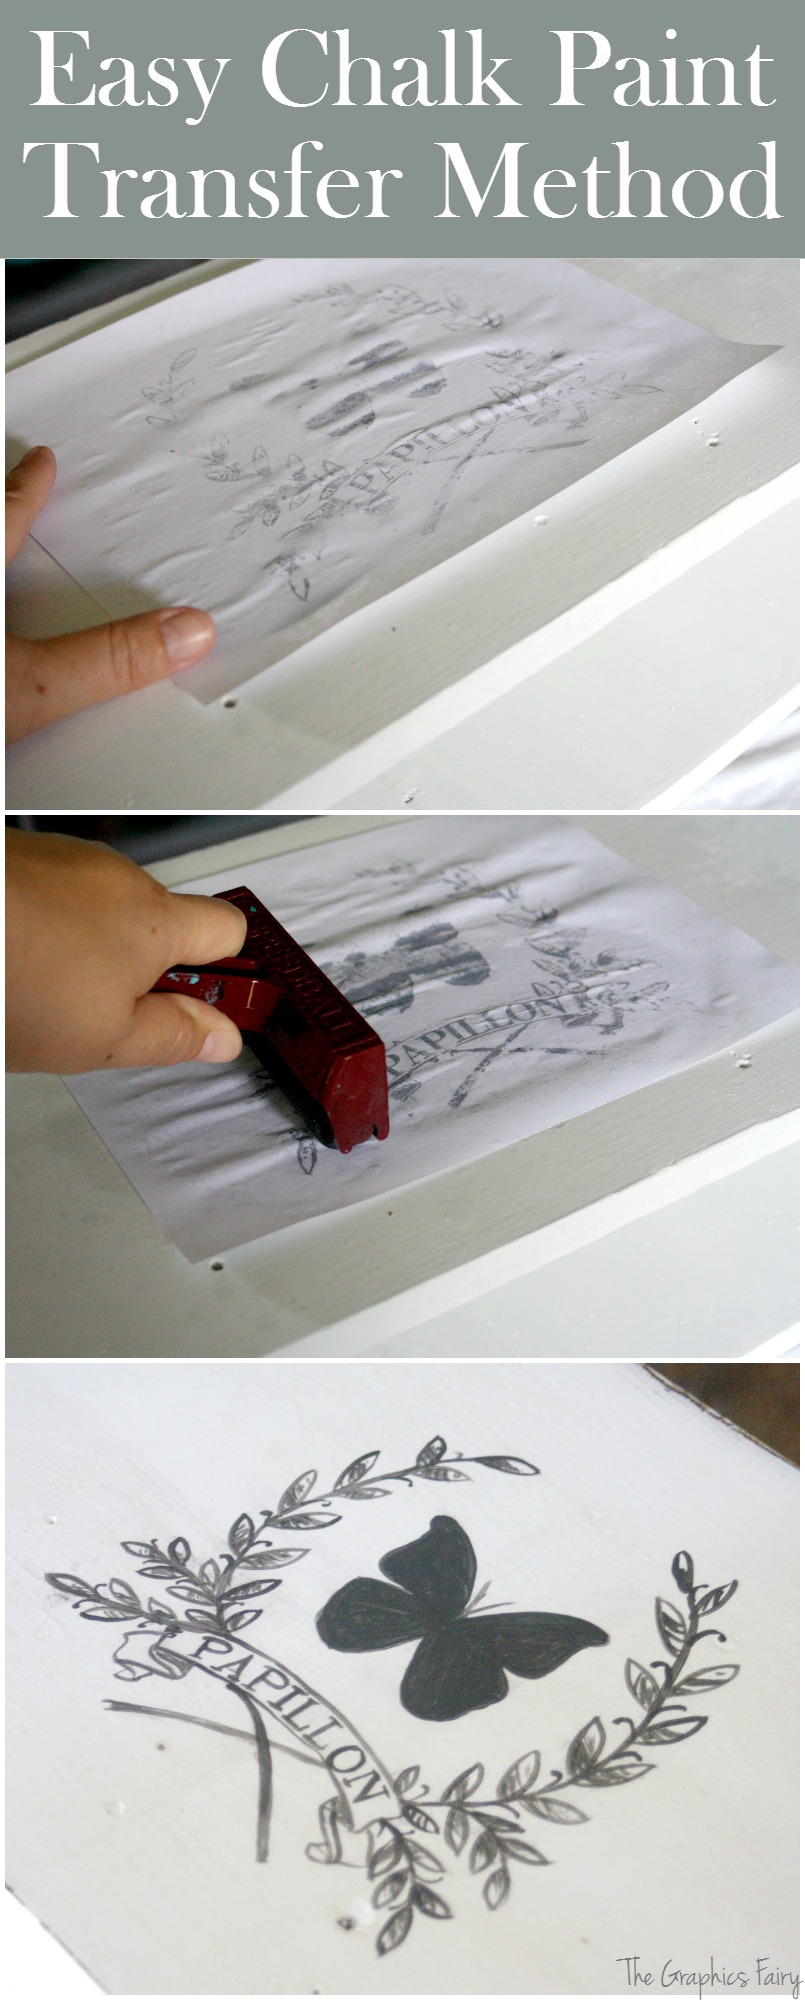 Furniture Transfers For Chalk Paint!